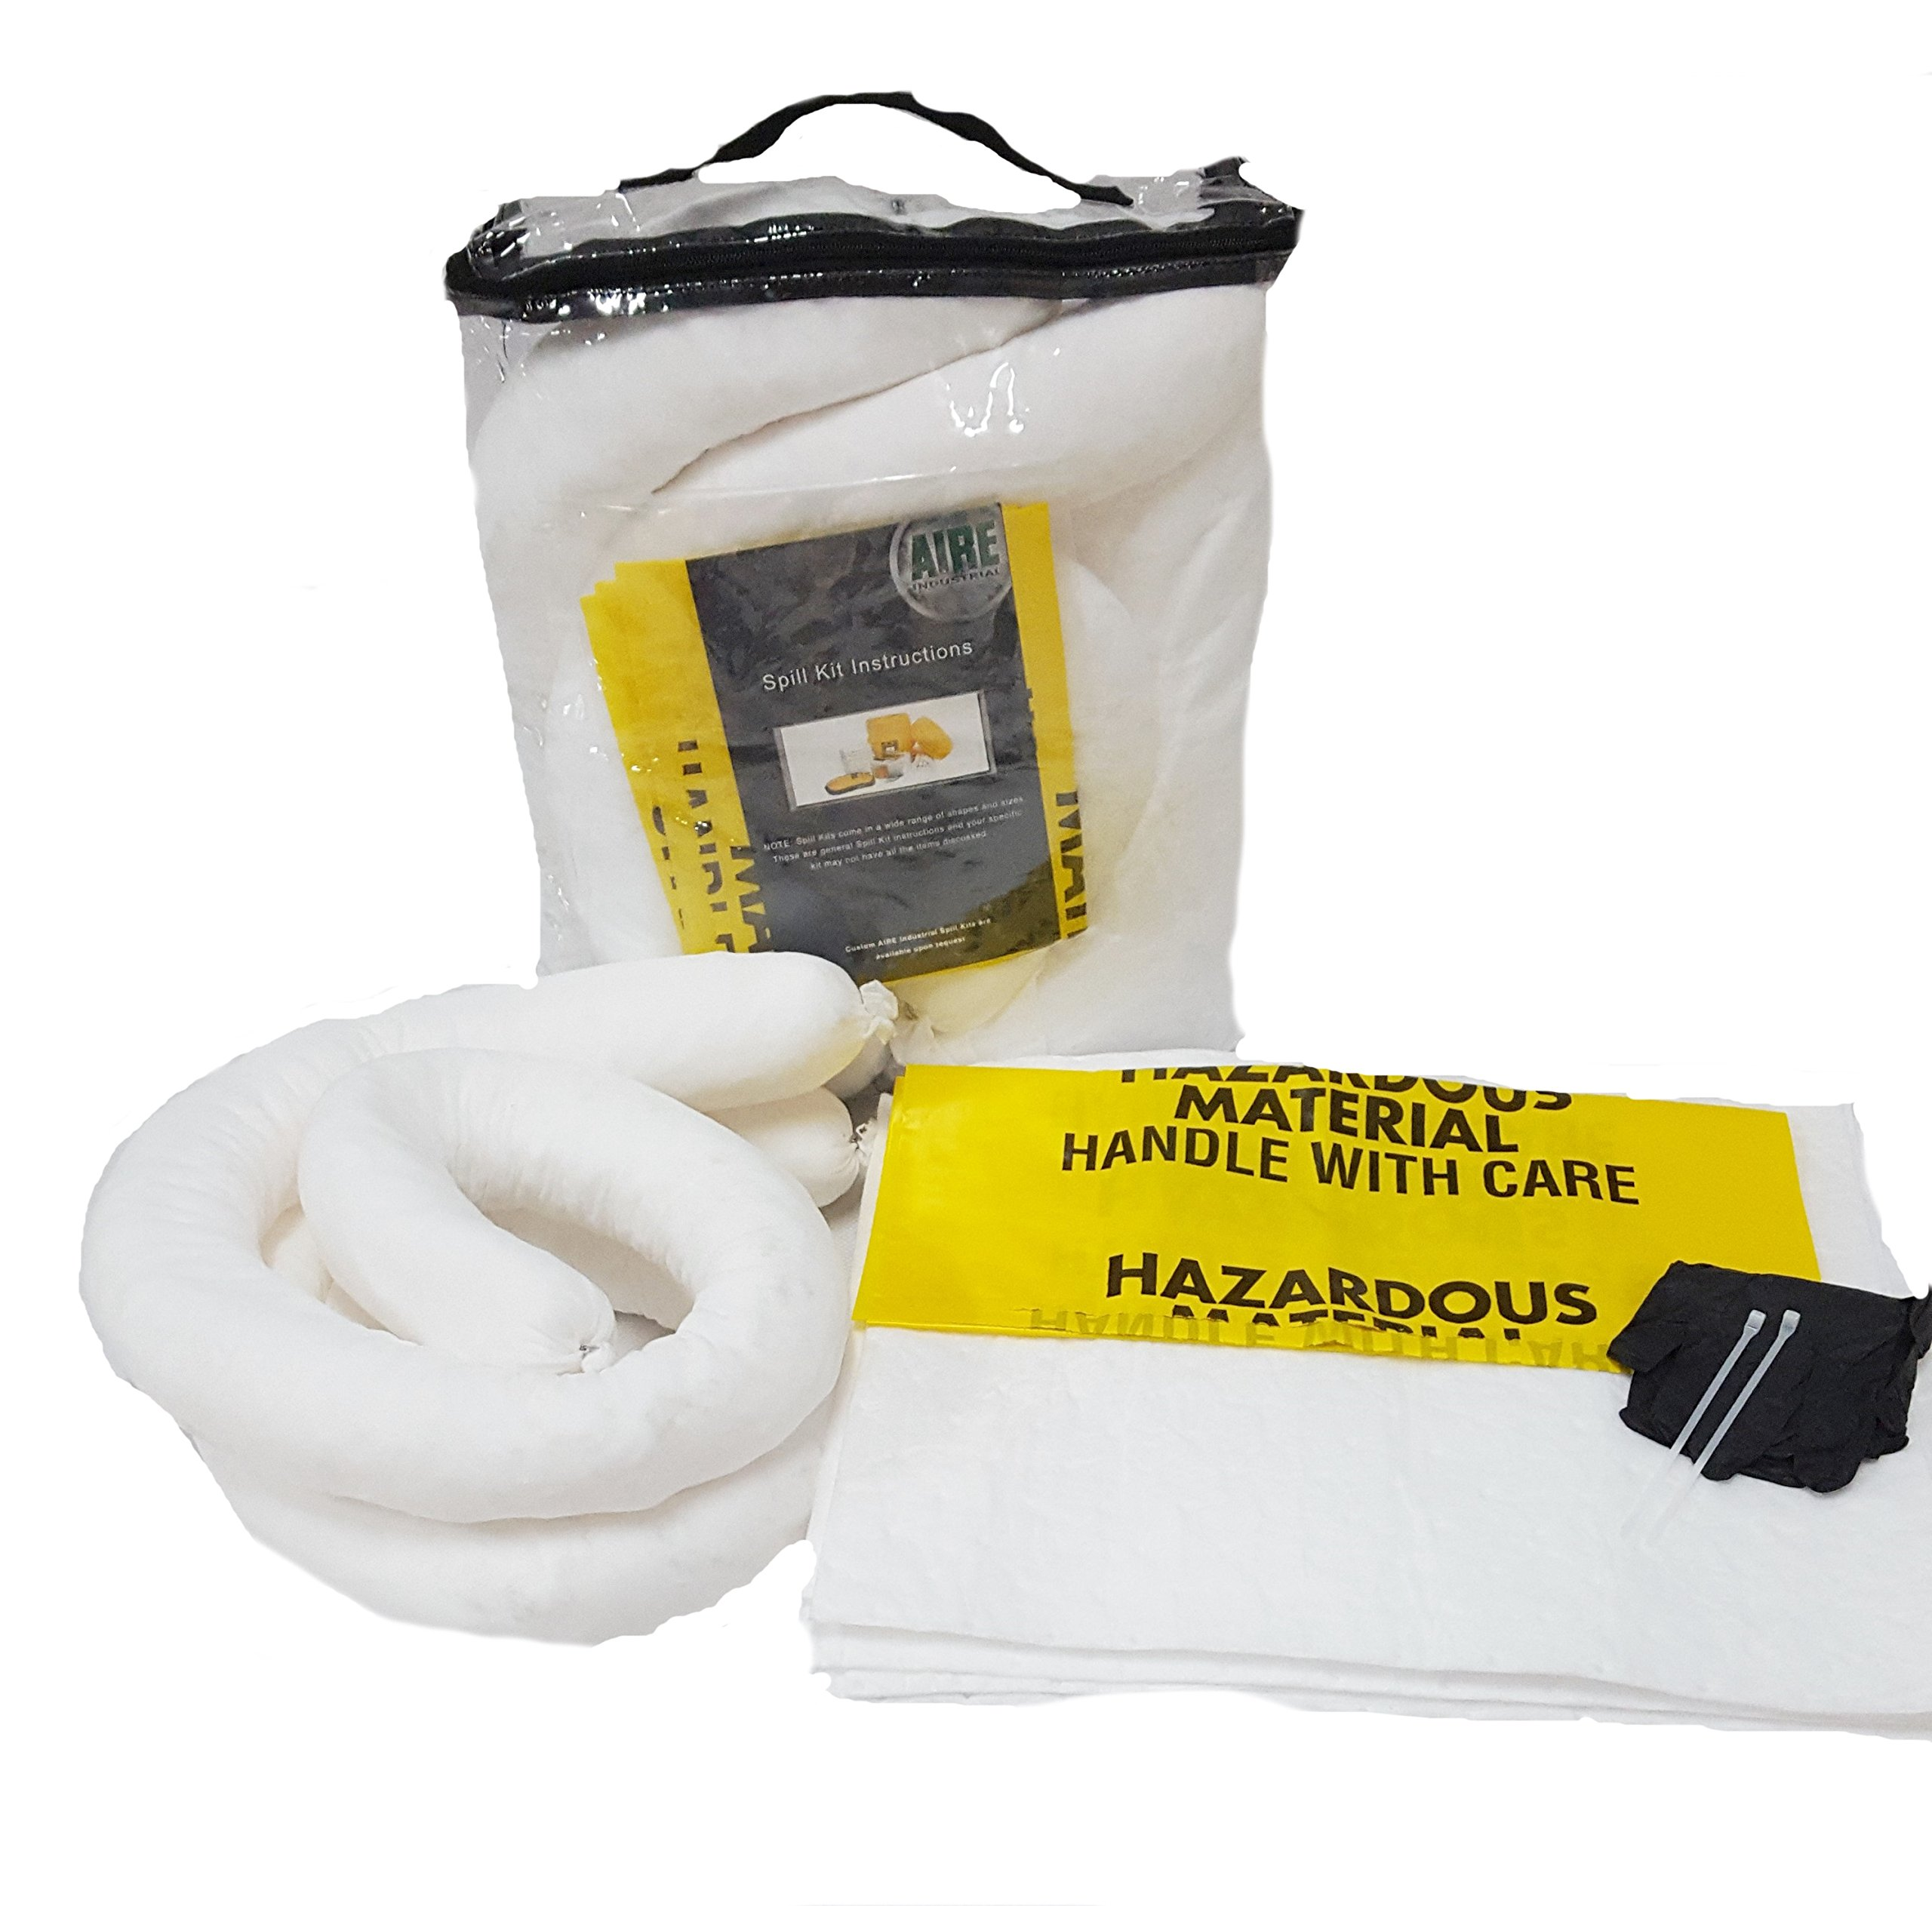 AIRE INDUSTRIAL 942-006455 Spill Kit Oil Economy Portable, 5 gal, 5 gal, Clear PVC